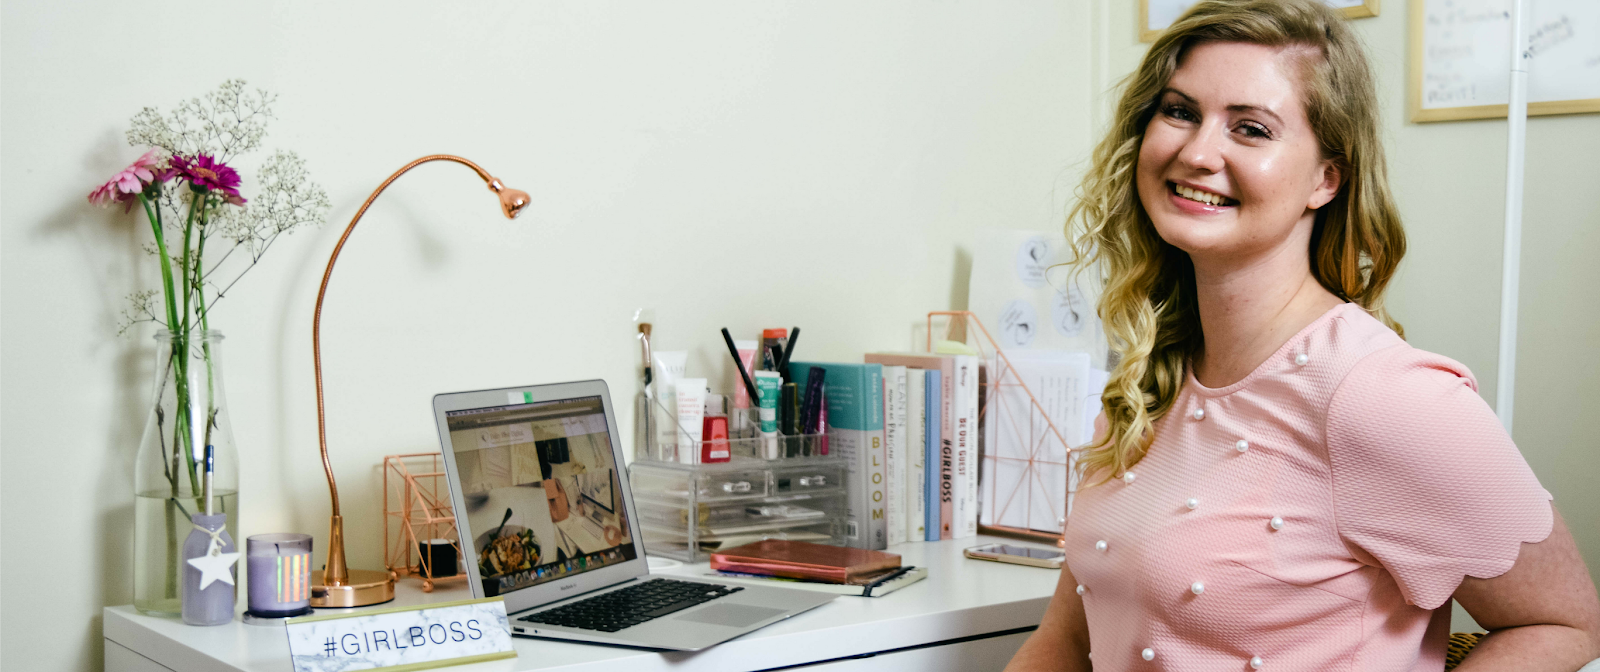 Tips How To Stay Productive When Working From Home, Dalry Rose Blog, Hampshire bloggers